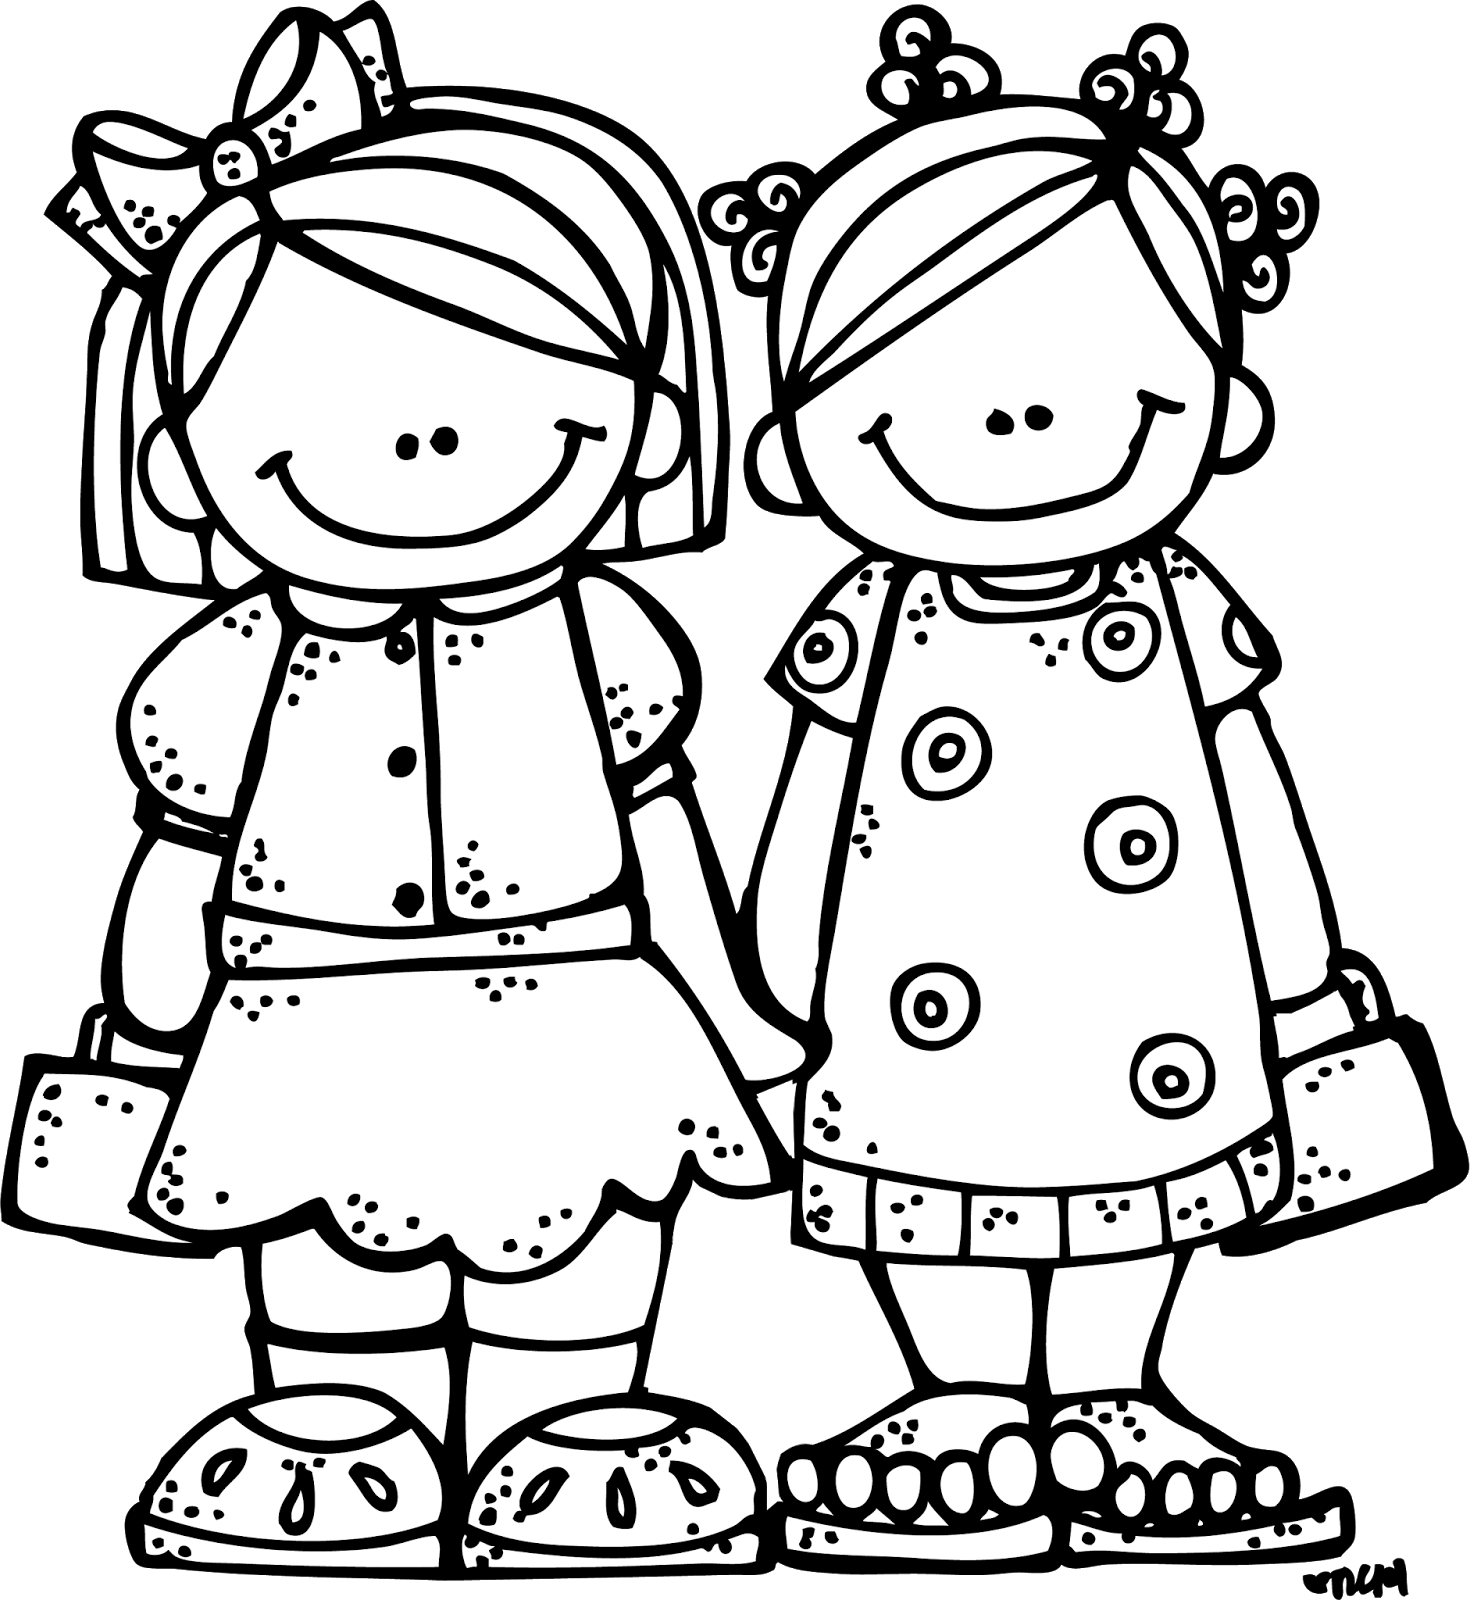 Sisters Black And White Clipart - Clipart Kid